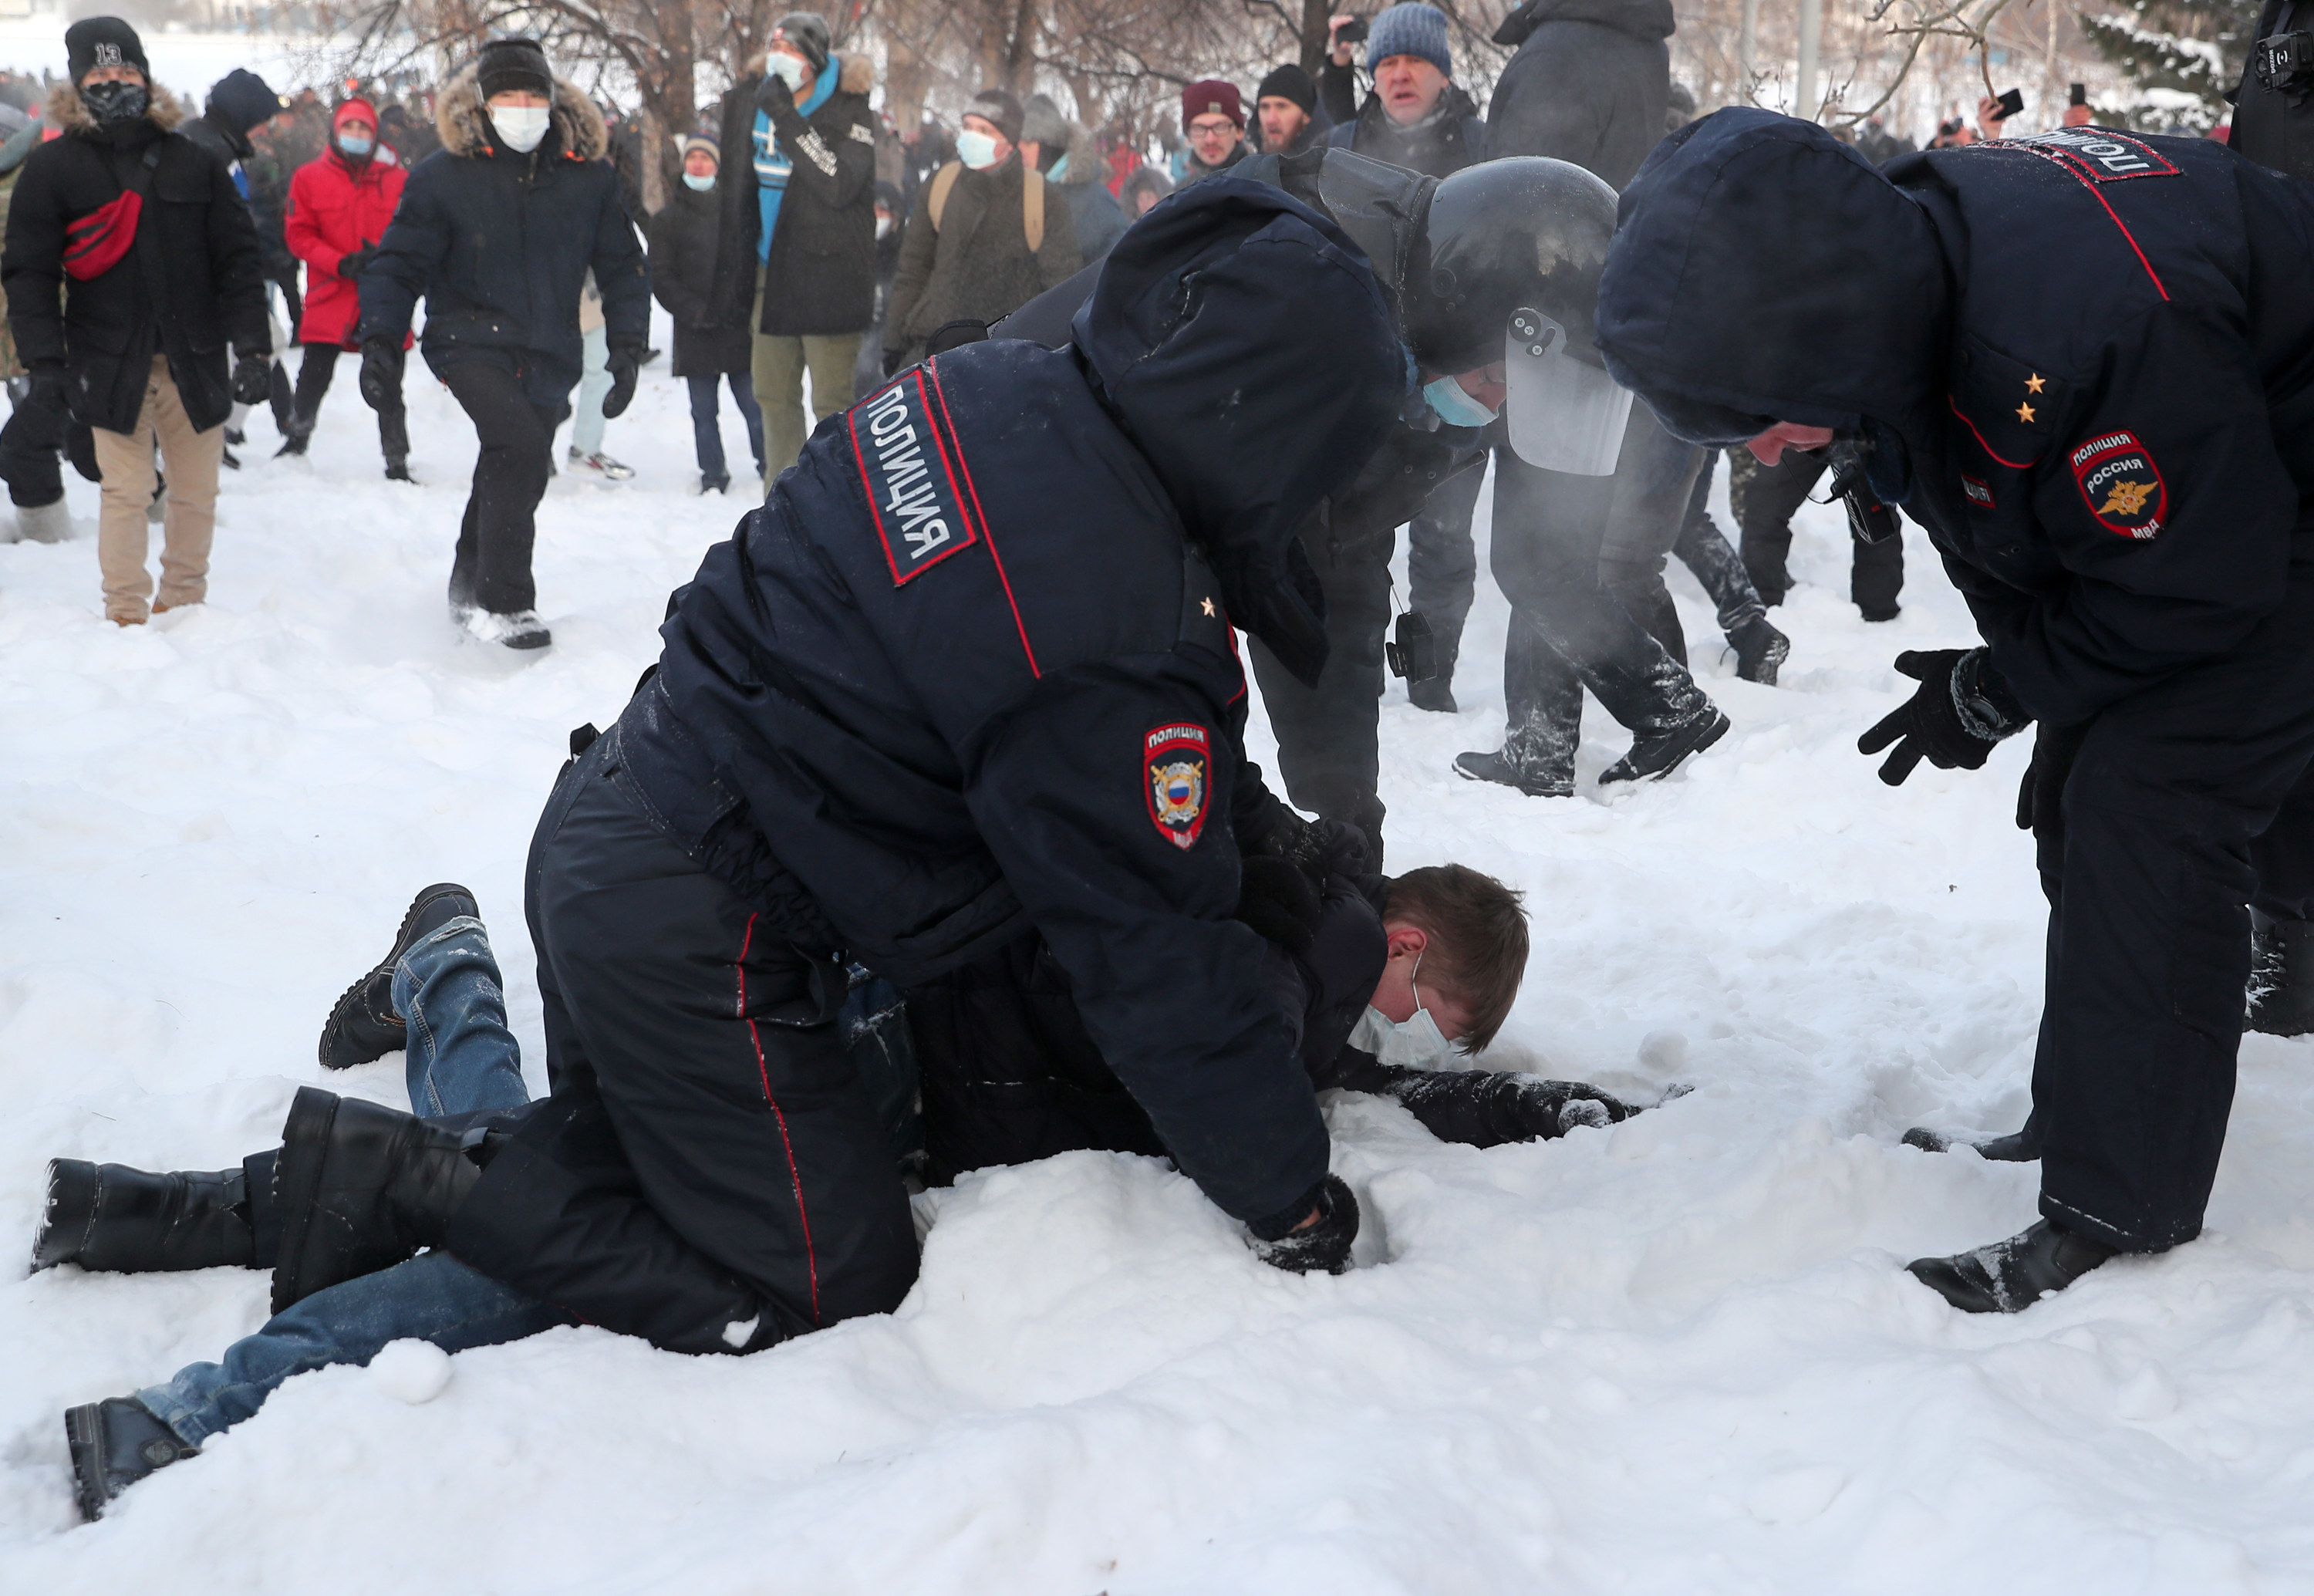 Police officers in uniform hold a man wearing a face mask down on the ground in the snow